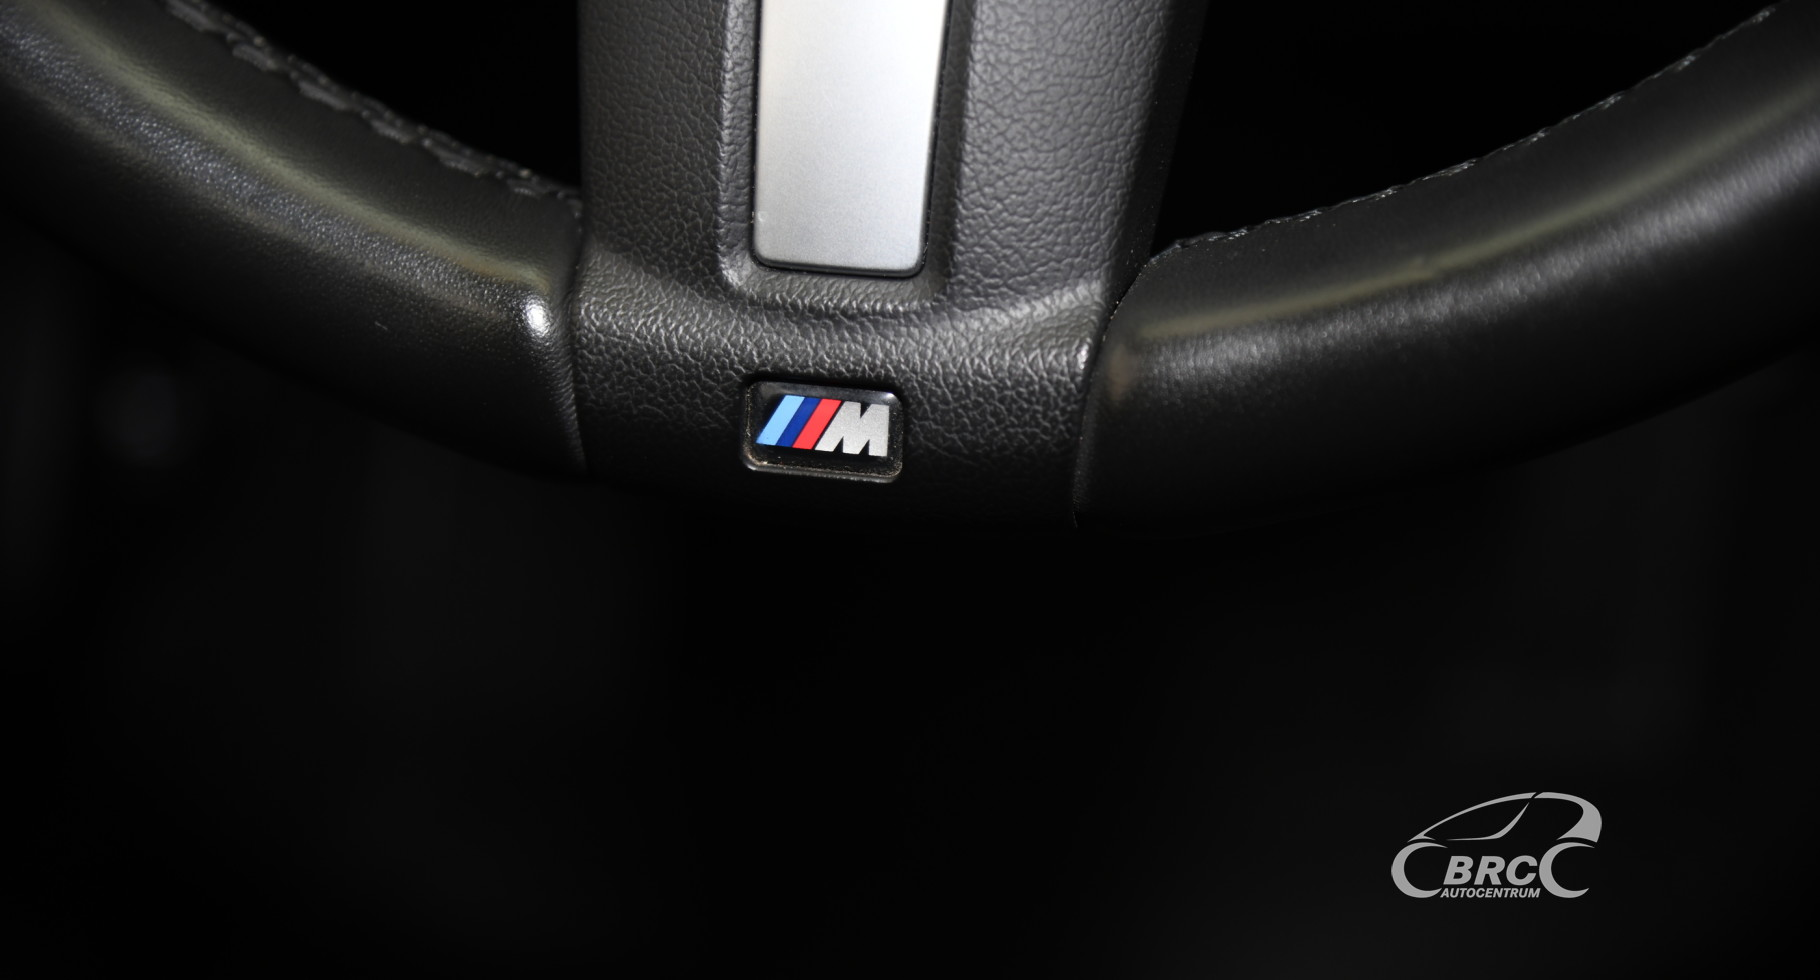 BMW 320 d M-performance Automatas